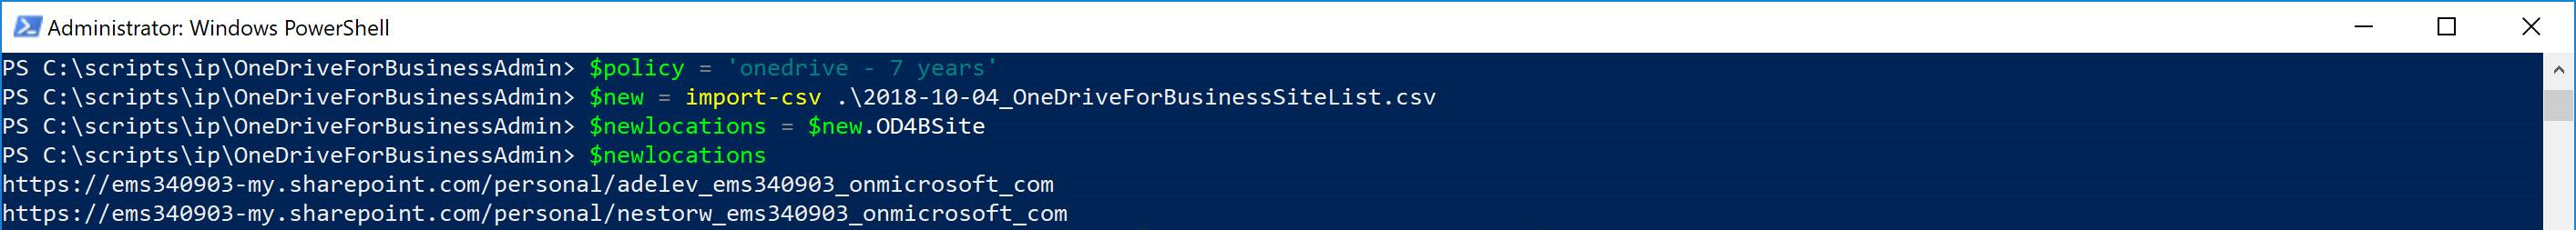 Adding OneDrive Locations to an Existing Retention Policy